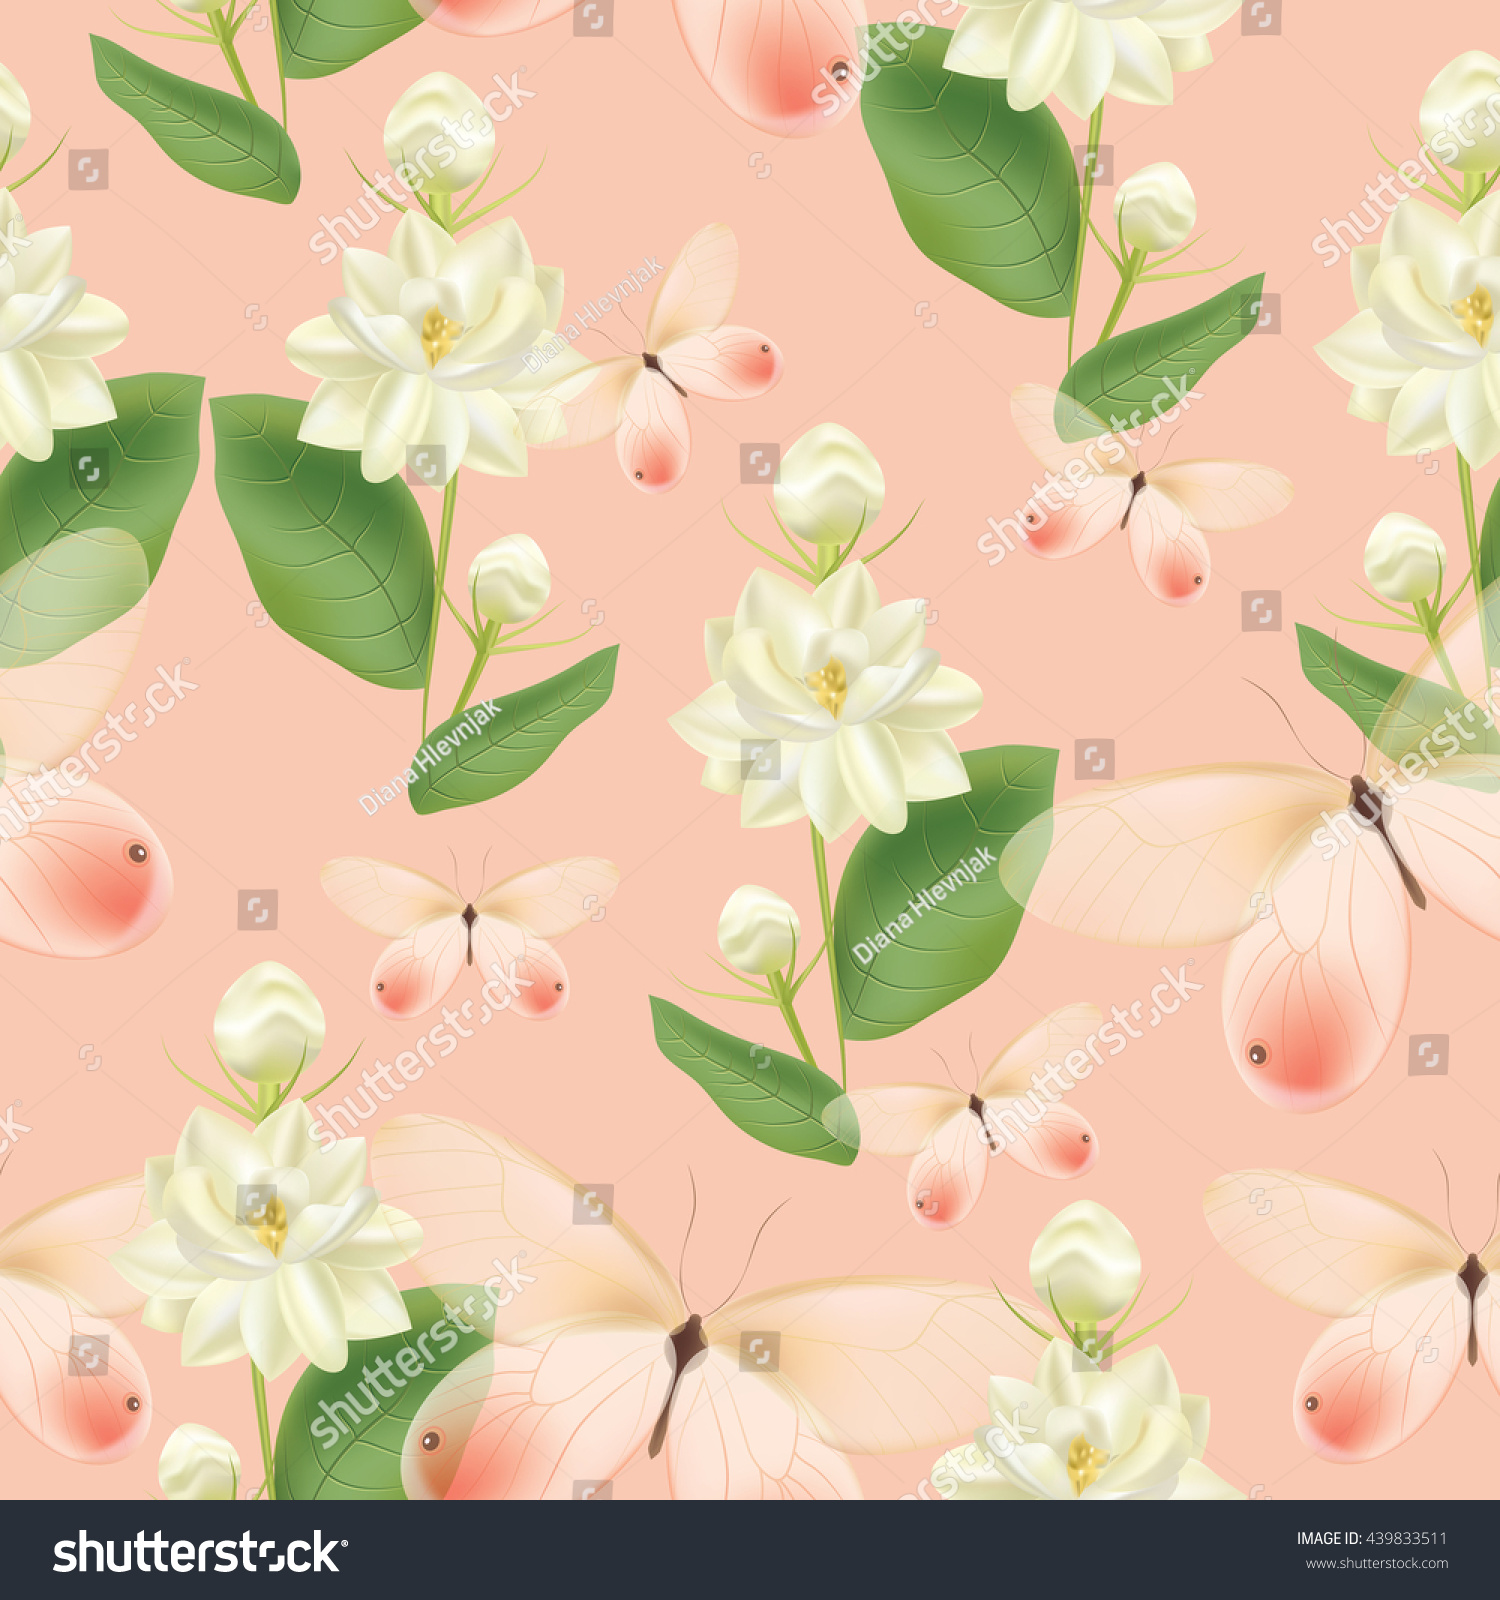 Beautiful seamless pattern white jasmine flowers stock illustration beautiful seamless pattern with white jasmine flowers green leaves and pink transparent butterflies on pink izmirmasajfo